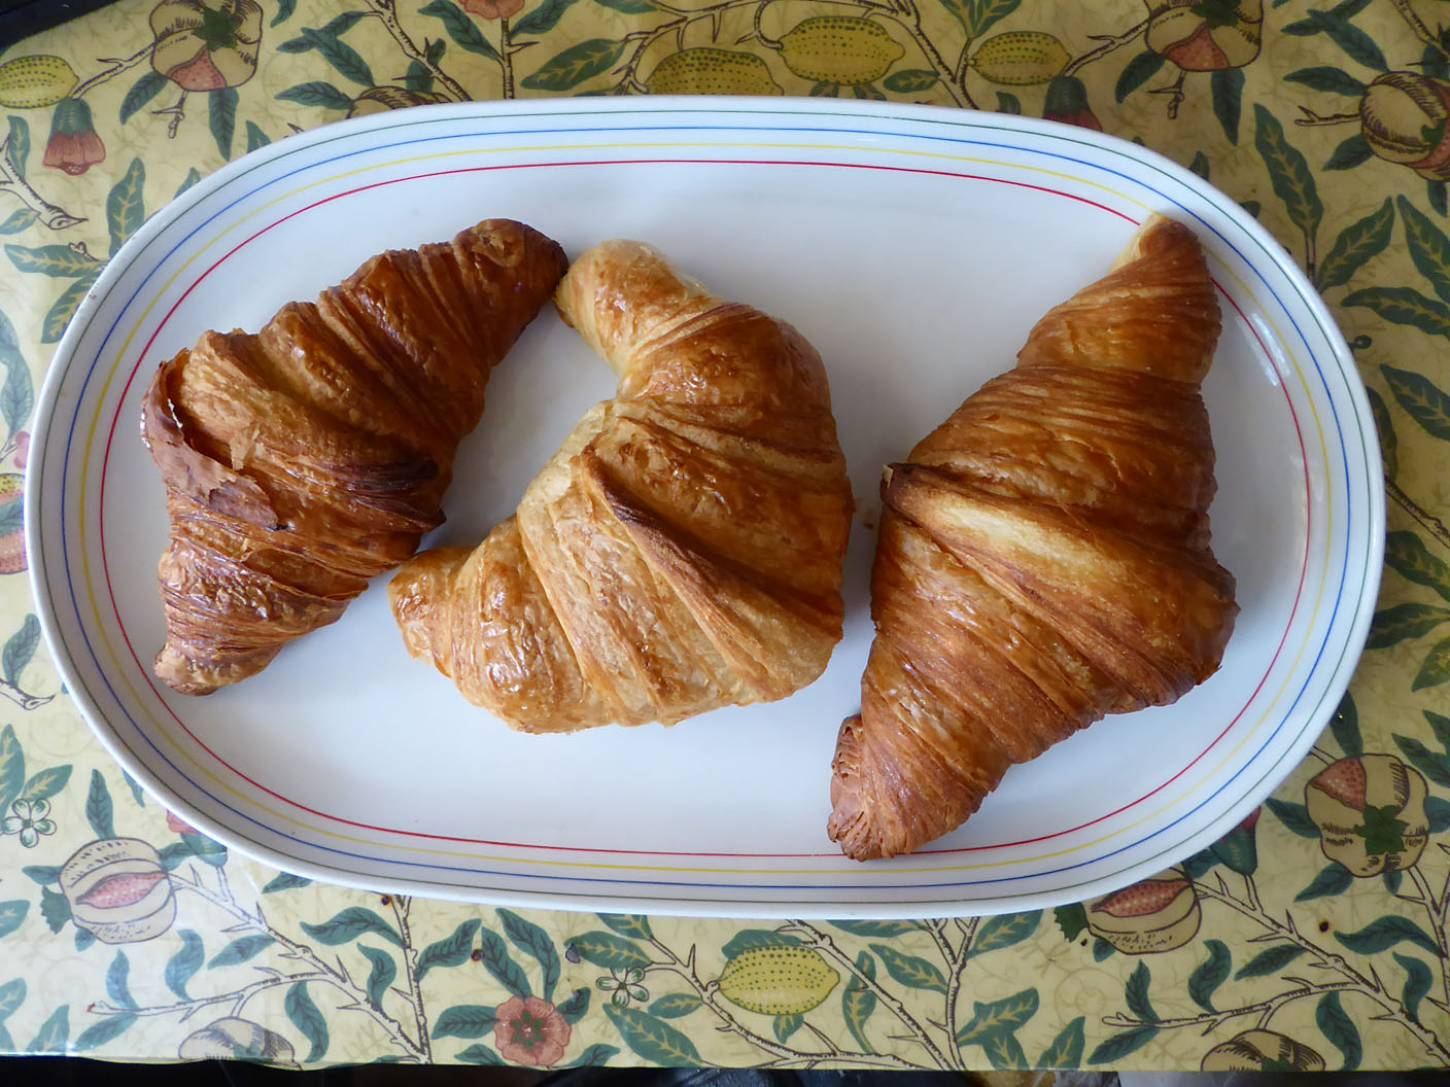 croissant test, L <a href='https://www.instagram.com/little_bread_pedlar/' target='_blank'>Little Bread Pedlar</a> (84g) M (ours) <a href='https://www.instagram.com/cablebakery/' target='_blank'>Cable Bakery</a> (92g) R <a href='https://www.instagram.com/thebakehouseputney/' target='_blank'>Bakehouse Putney</a> (102g). Bake on ours rather light ... - 2:00pm&nbsp;15<sup>th</sup>&nbsp;Oct.&nbsp;'17  <a href='http://maps.google.com/?t=h&q=51.471306,-0.104033&z=18&output=embed' target=_blank><img src='http://www.brockwell-bake.org.uk/img/marker.png' style='border:none;vertical-align:top' height=16px></a>